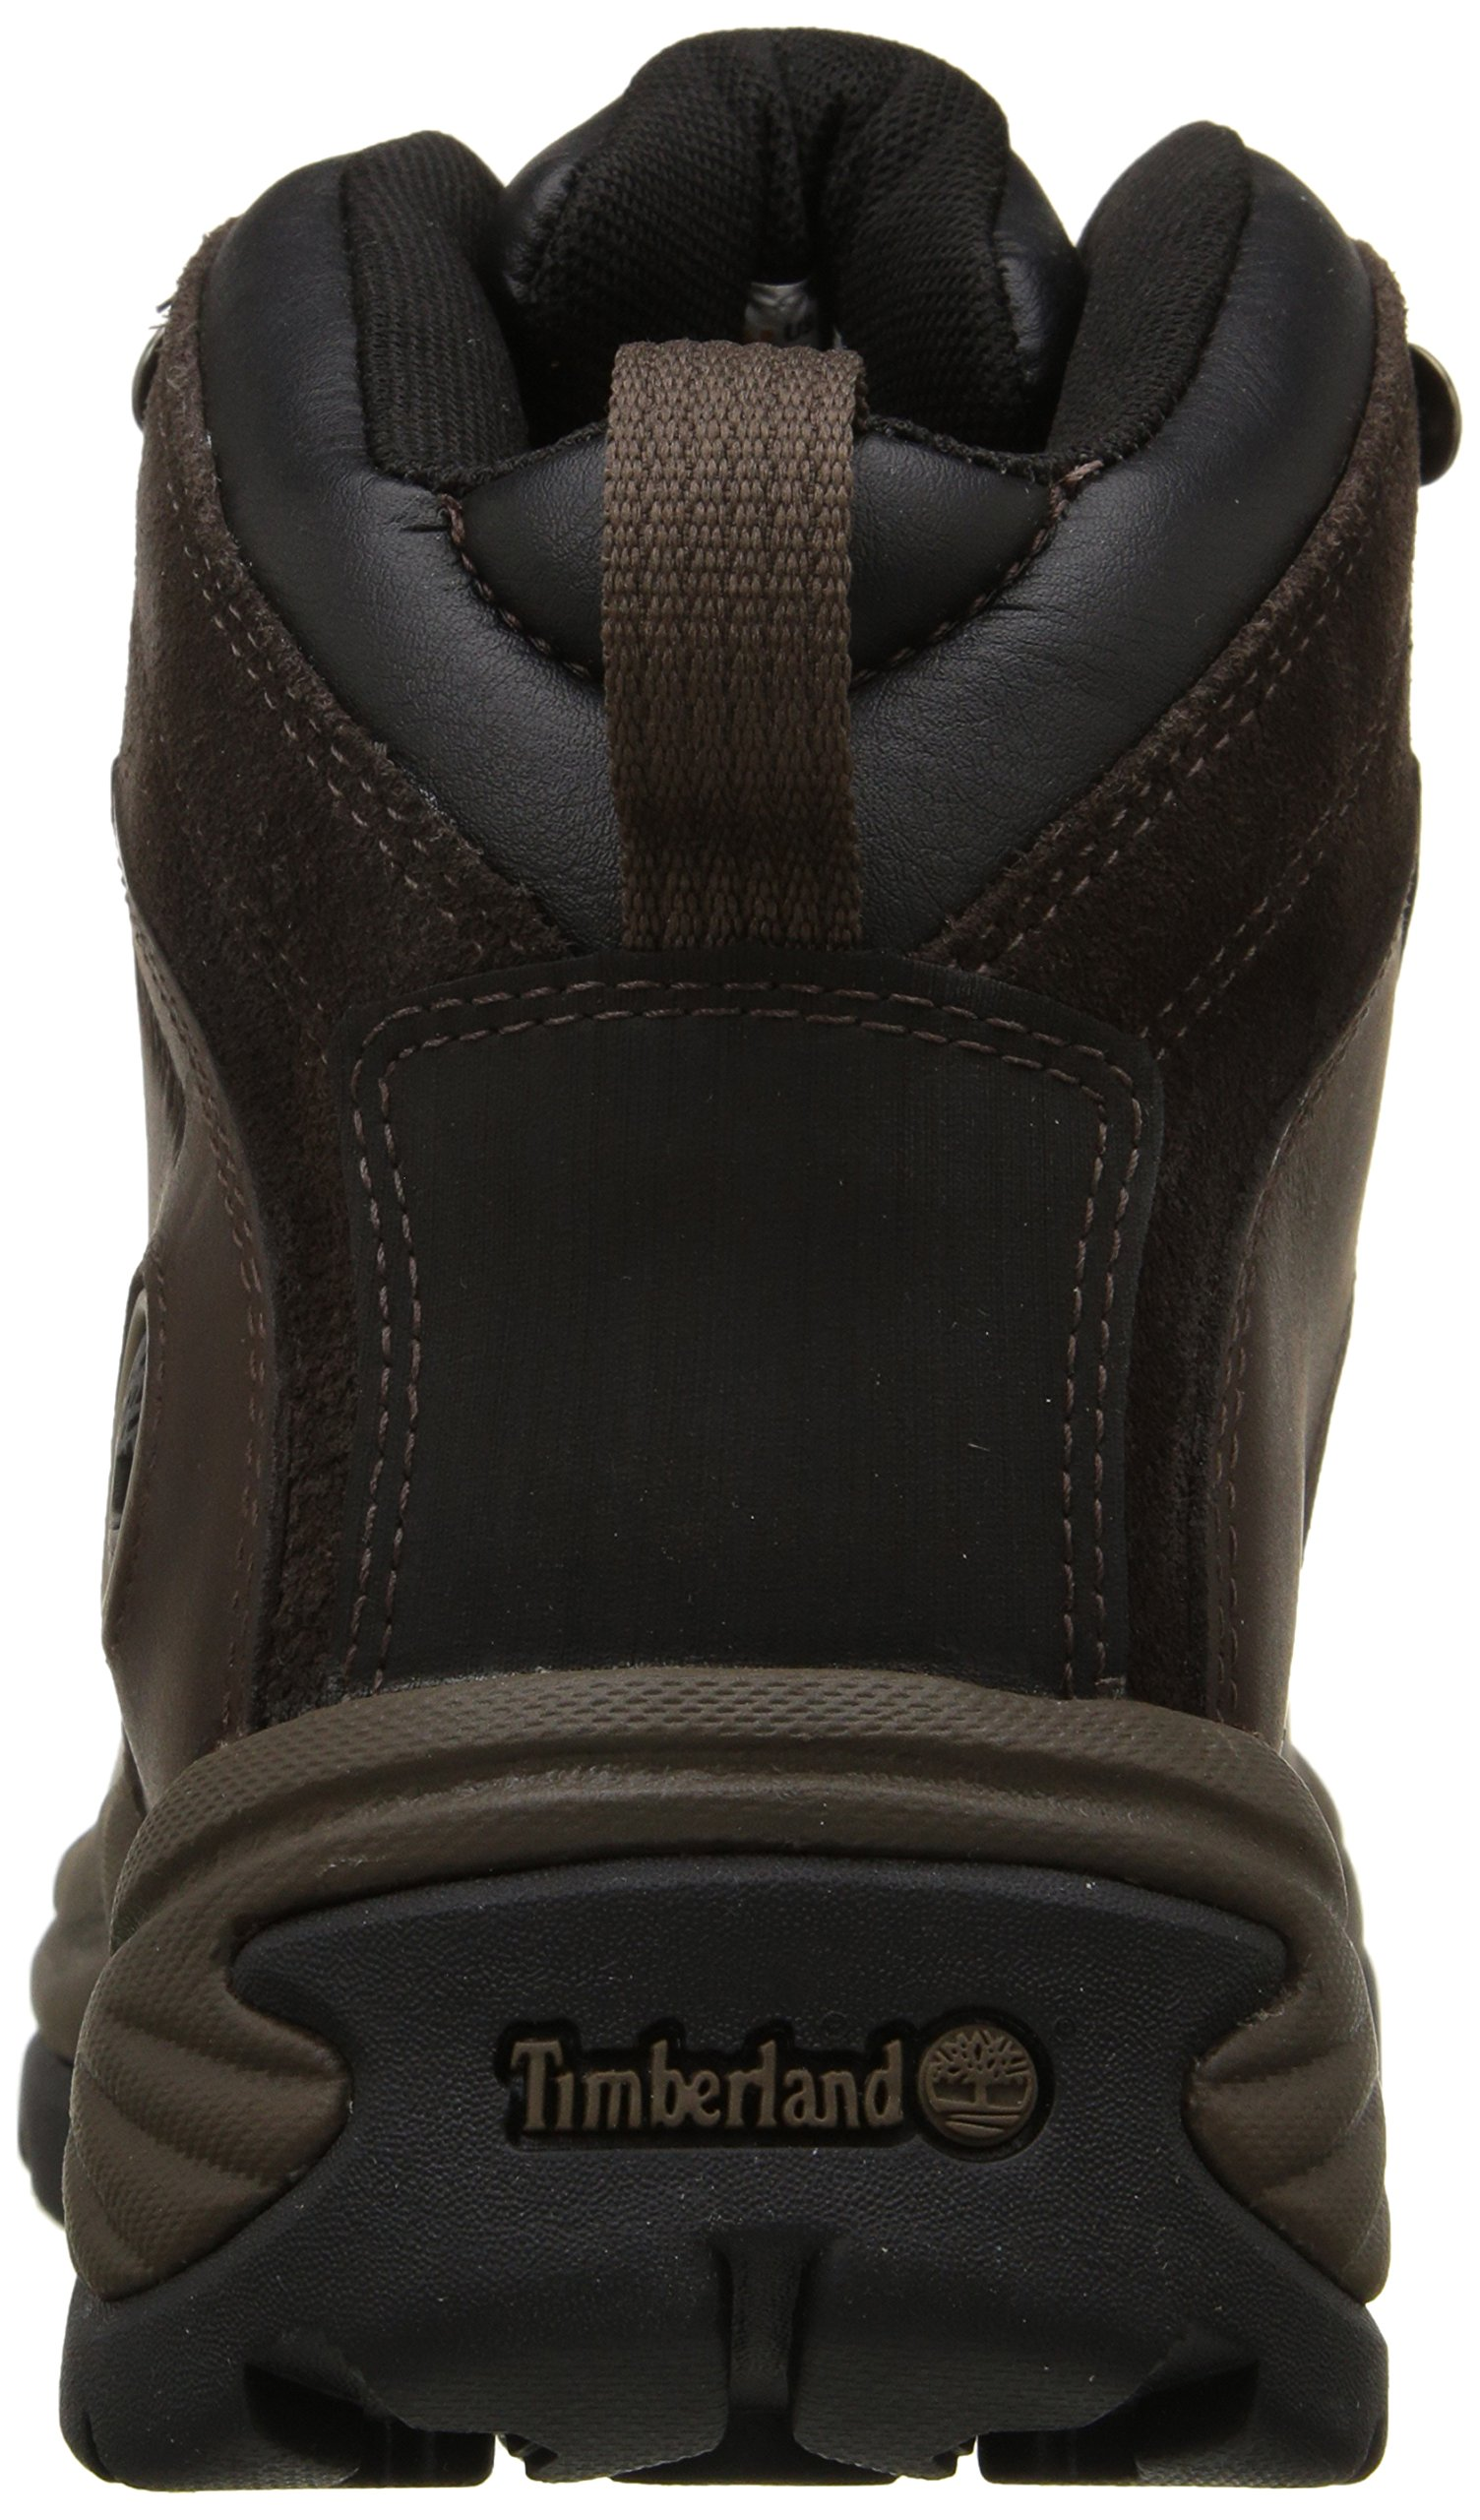 Timberland Men's Flume Waterproof Boot,Dark Brown,13 M US by Timberland (Image #2)